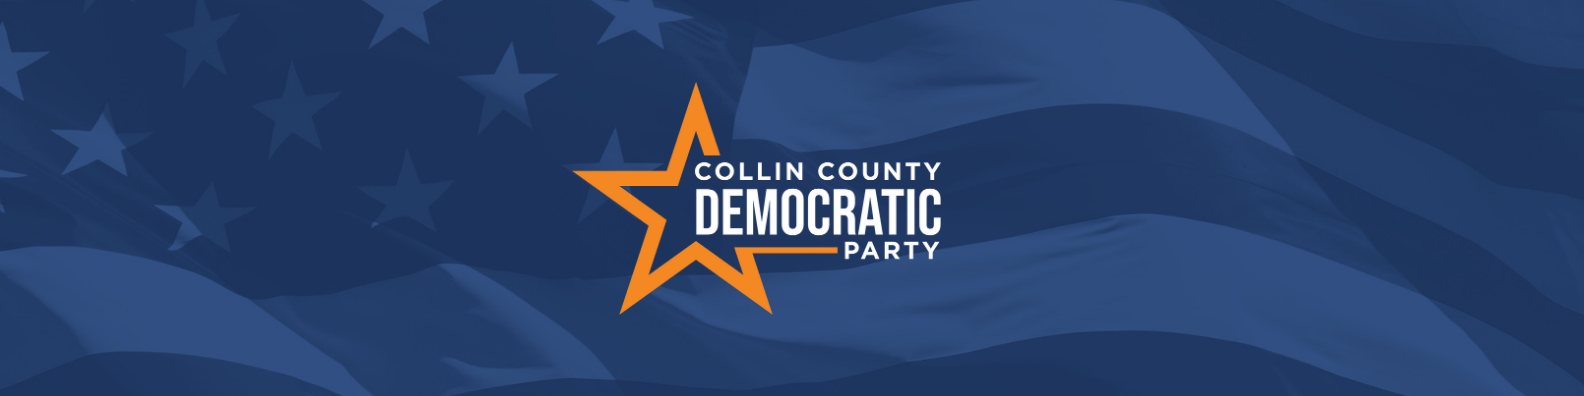 Collin county DP Banner